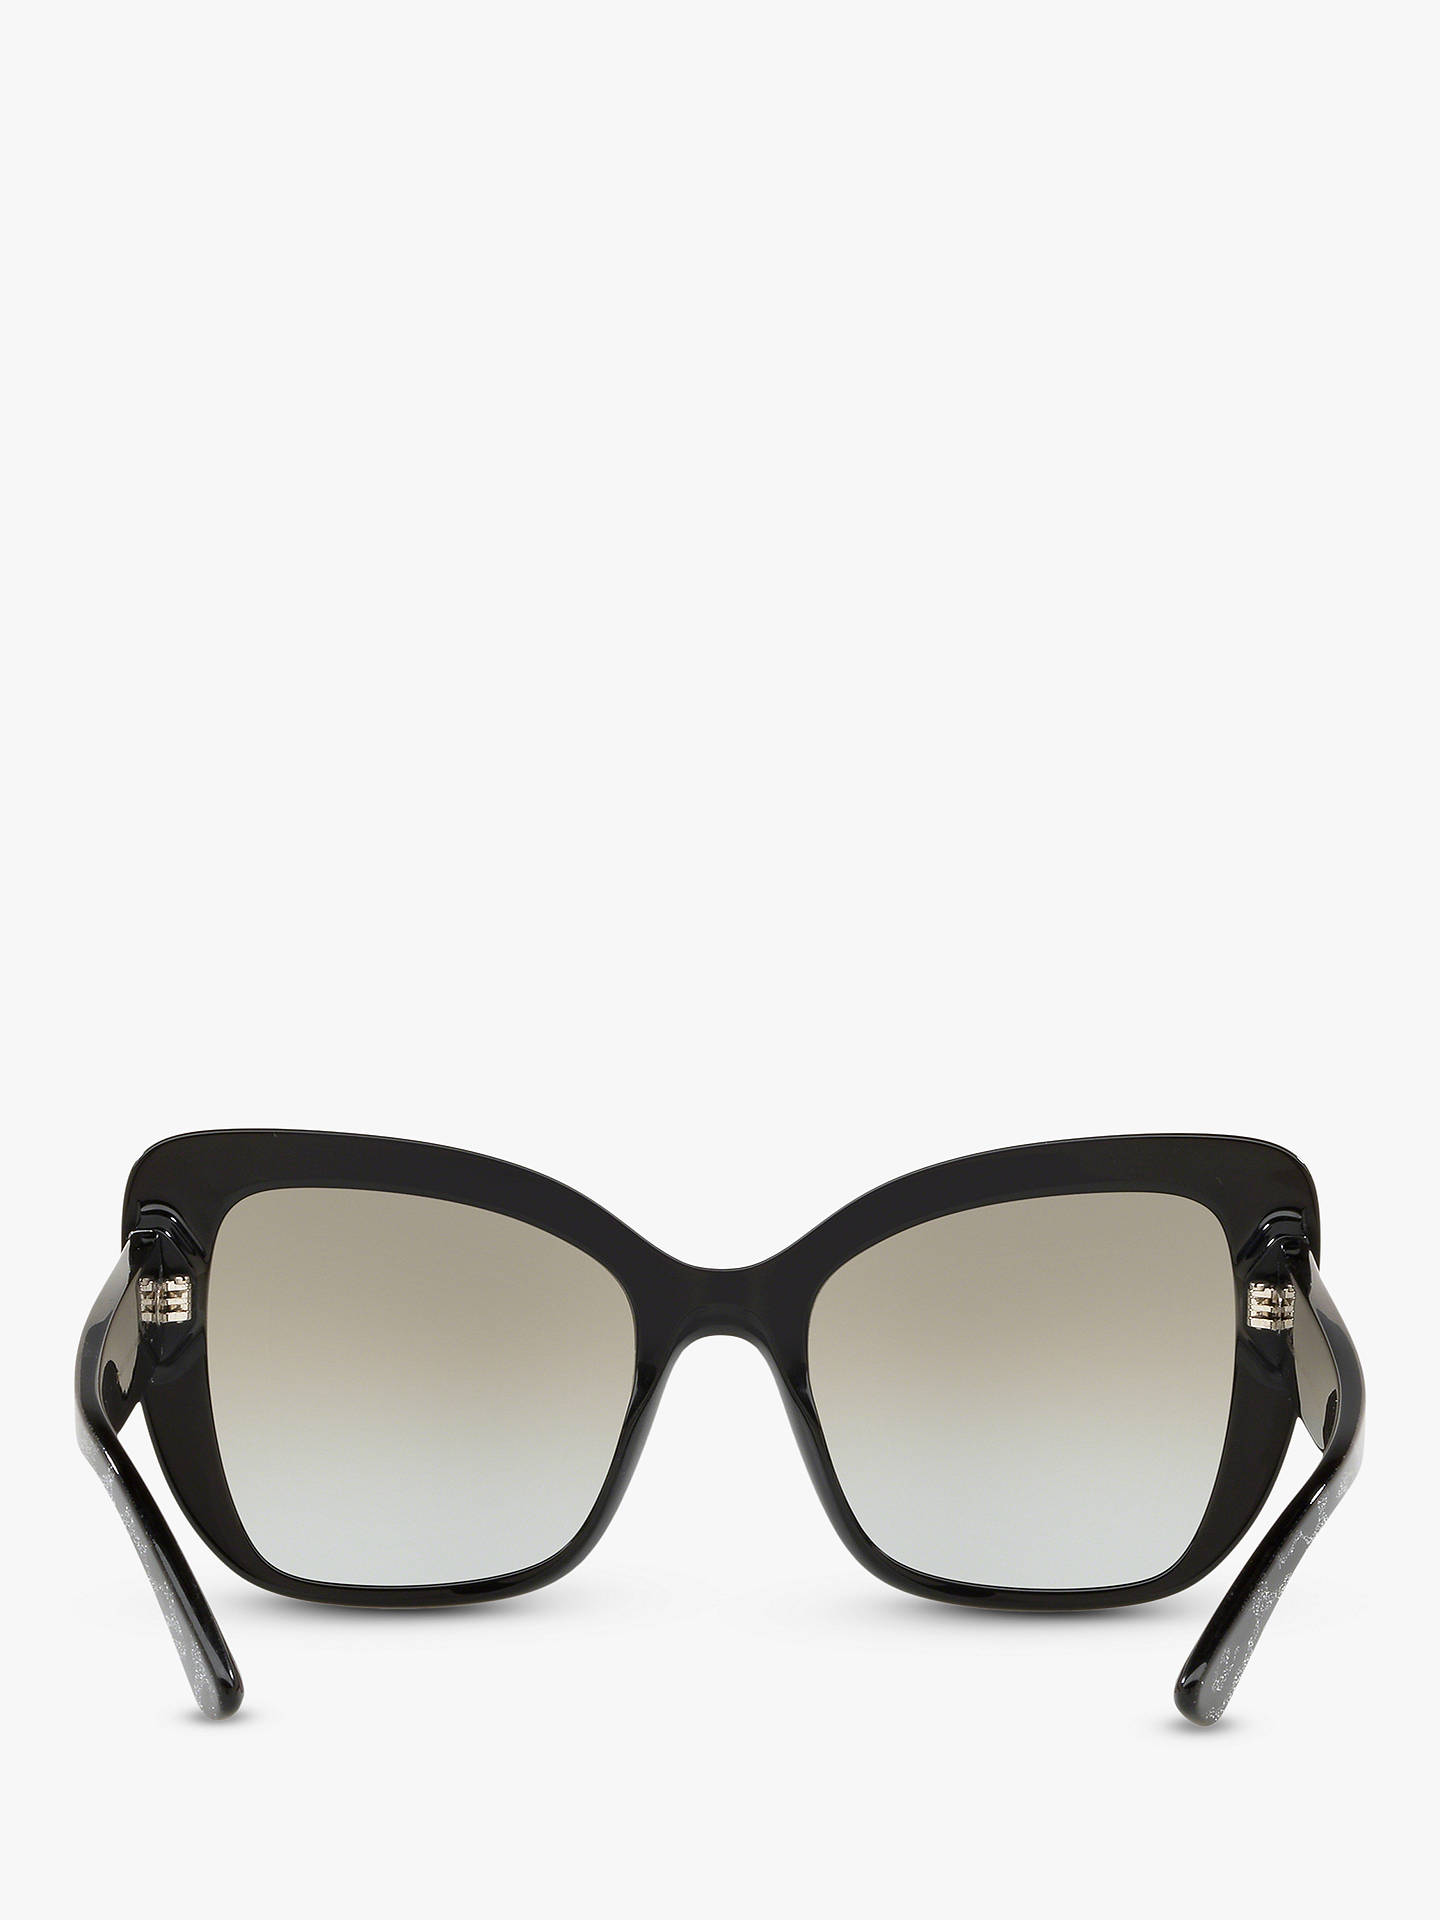 Buy Dolce & Gabbana DG4348 Women's Cat's Eye Sunglasses, Black Glitter/Mirror Silver Online at johnlewis.com